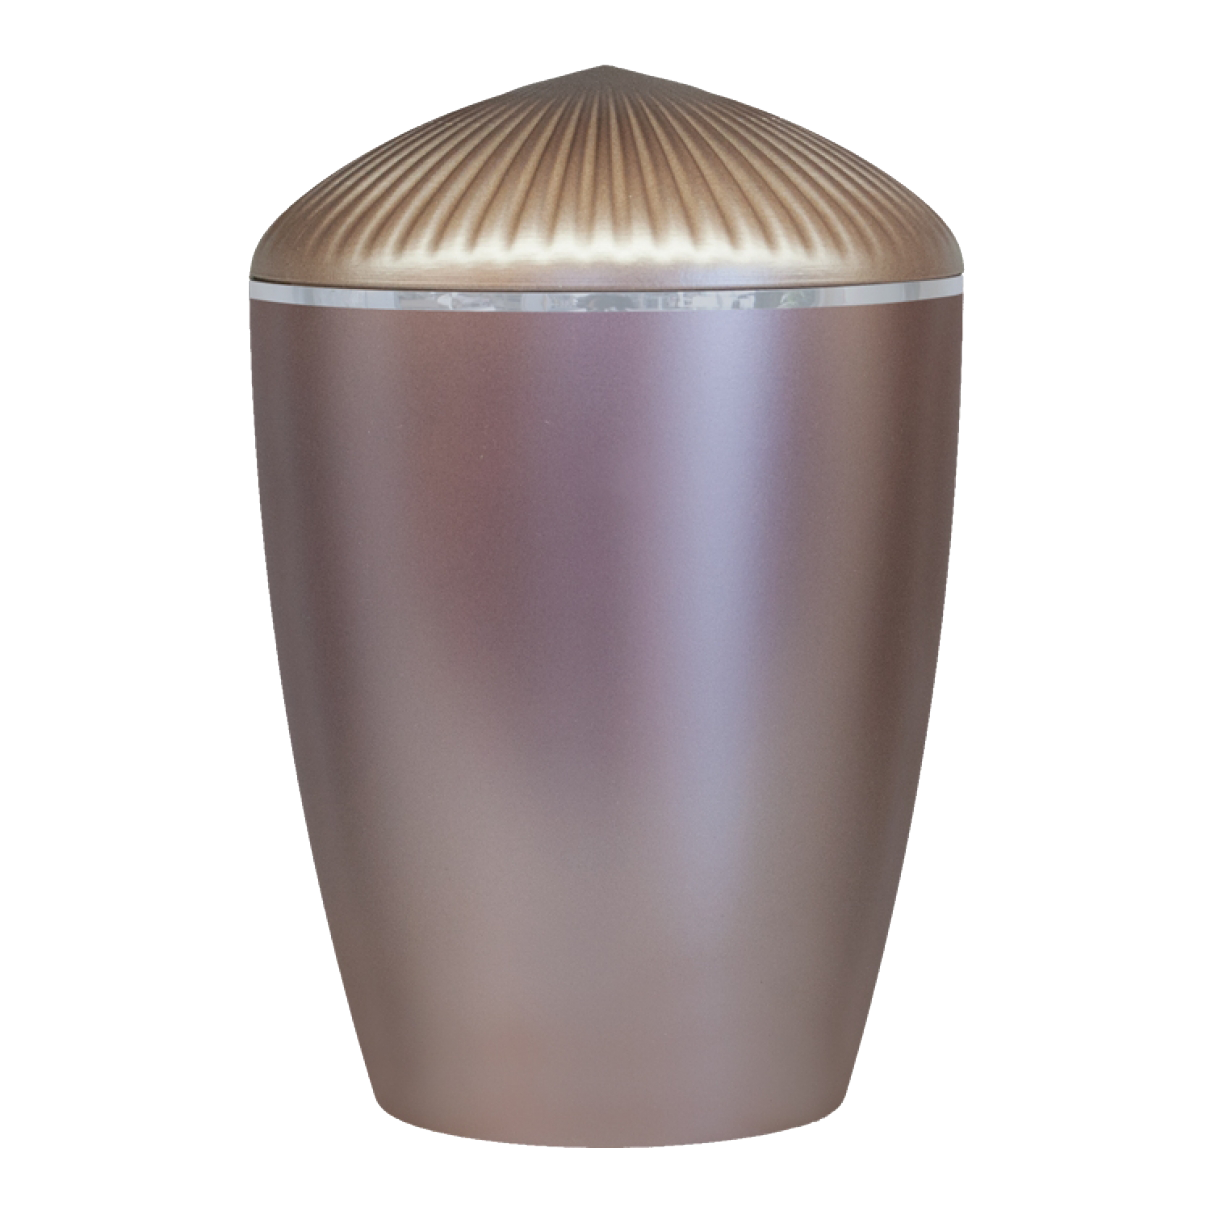 Ferndown Silver Band Cremation Urn – Taupe